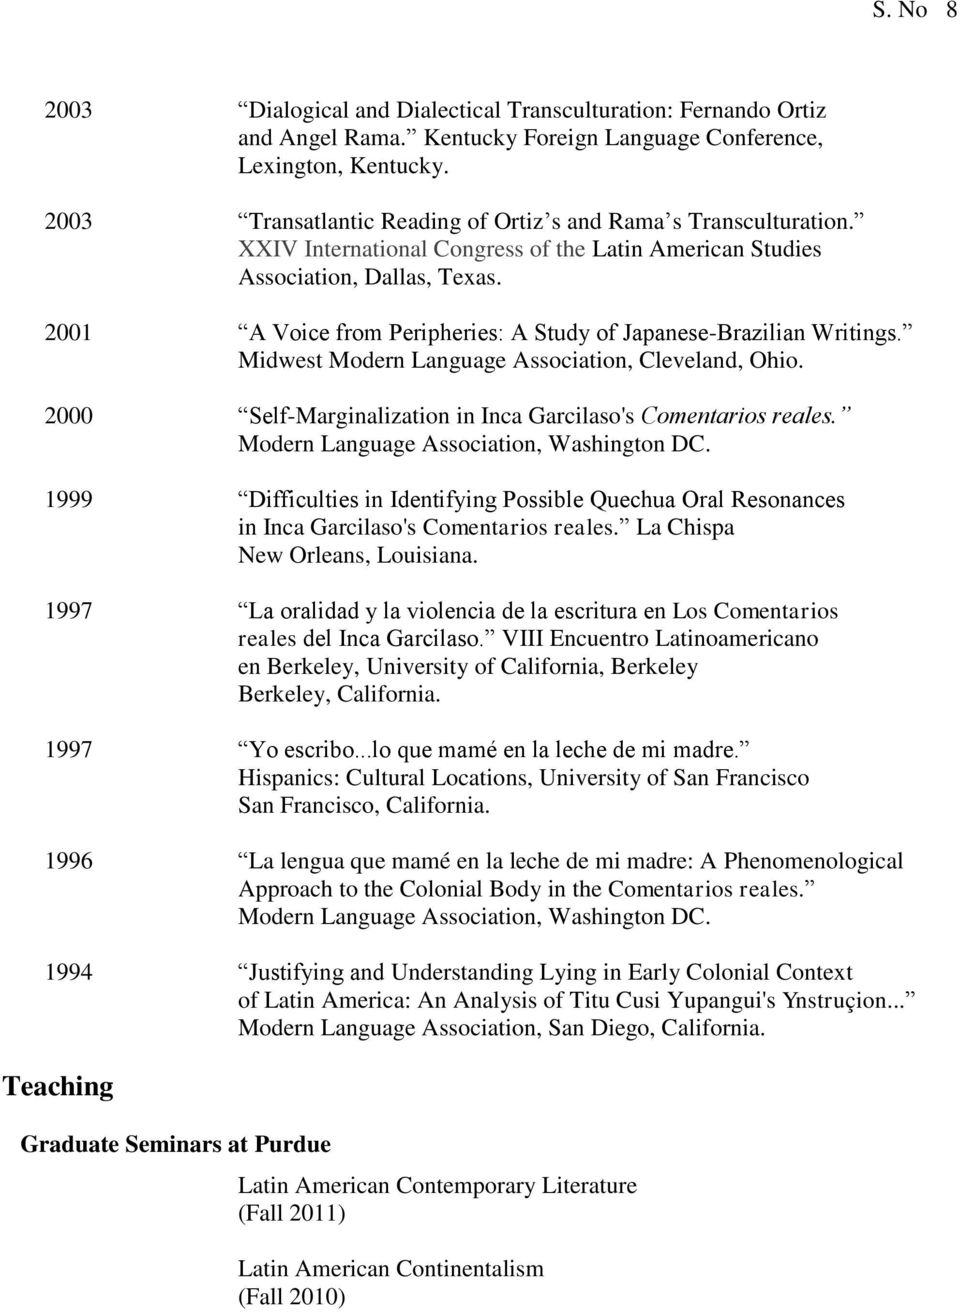 2001 A Voice from Peripheries: A Study of Japanese-Brazilian Writings. Midwest Modern Language Association, Cleveland, Ohio. 2000 Self-Marginalization in Inca Garcilaso's Comentarios reales.